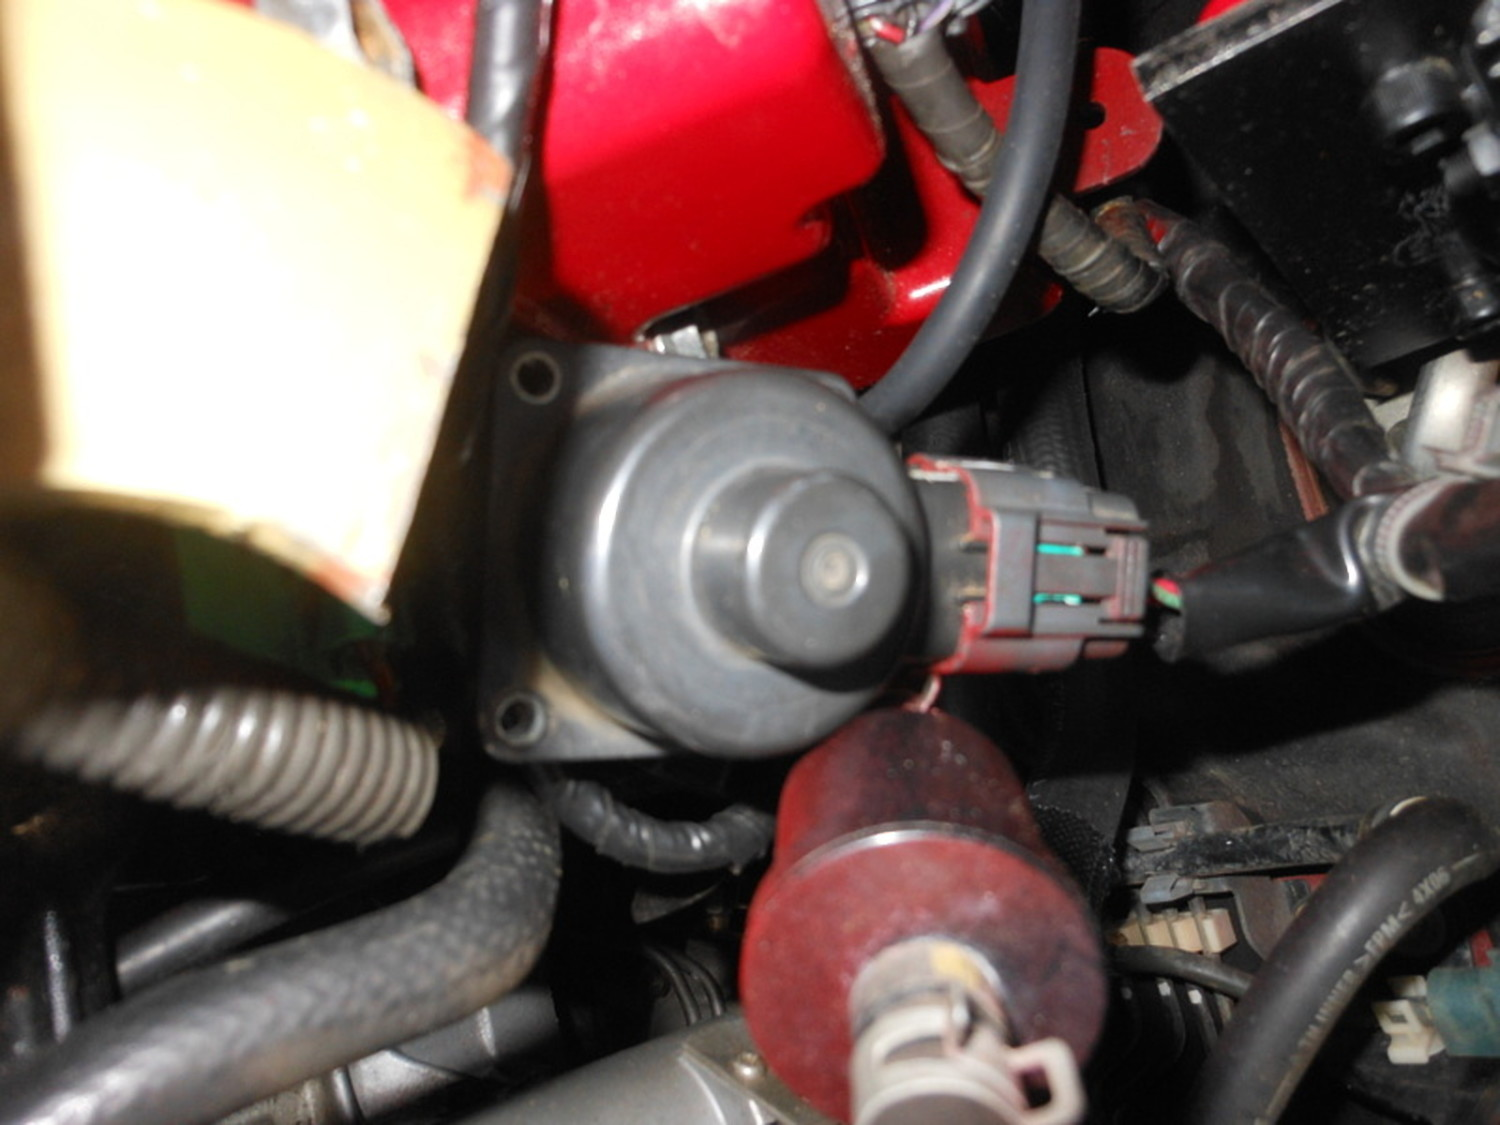 hight resolution of this one is a big deal as you will go into limp mode and can t rev over approx 3k rpms if you take this sensor out from under the hood ask me how i know